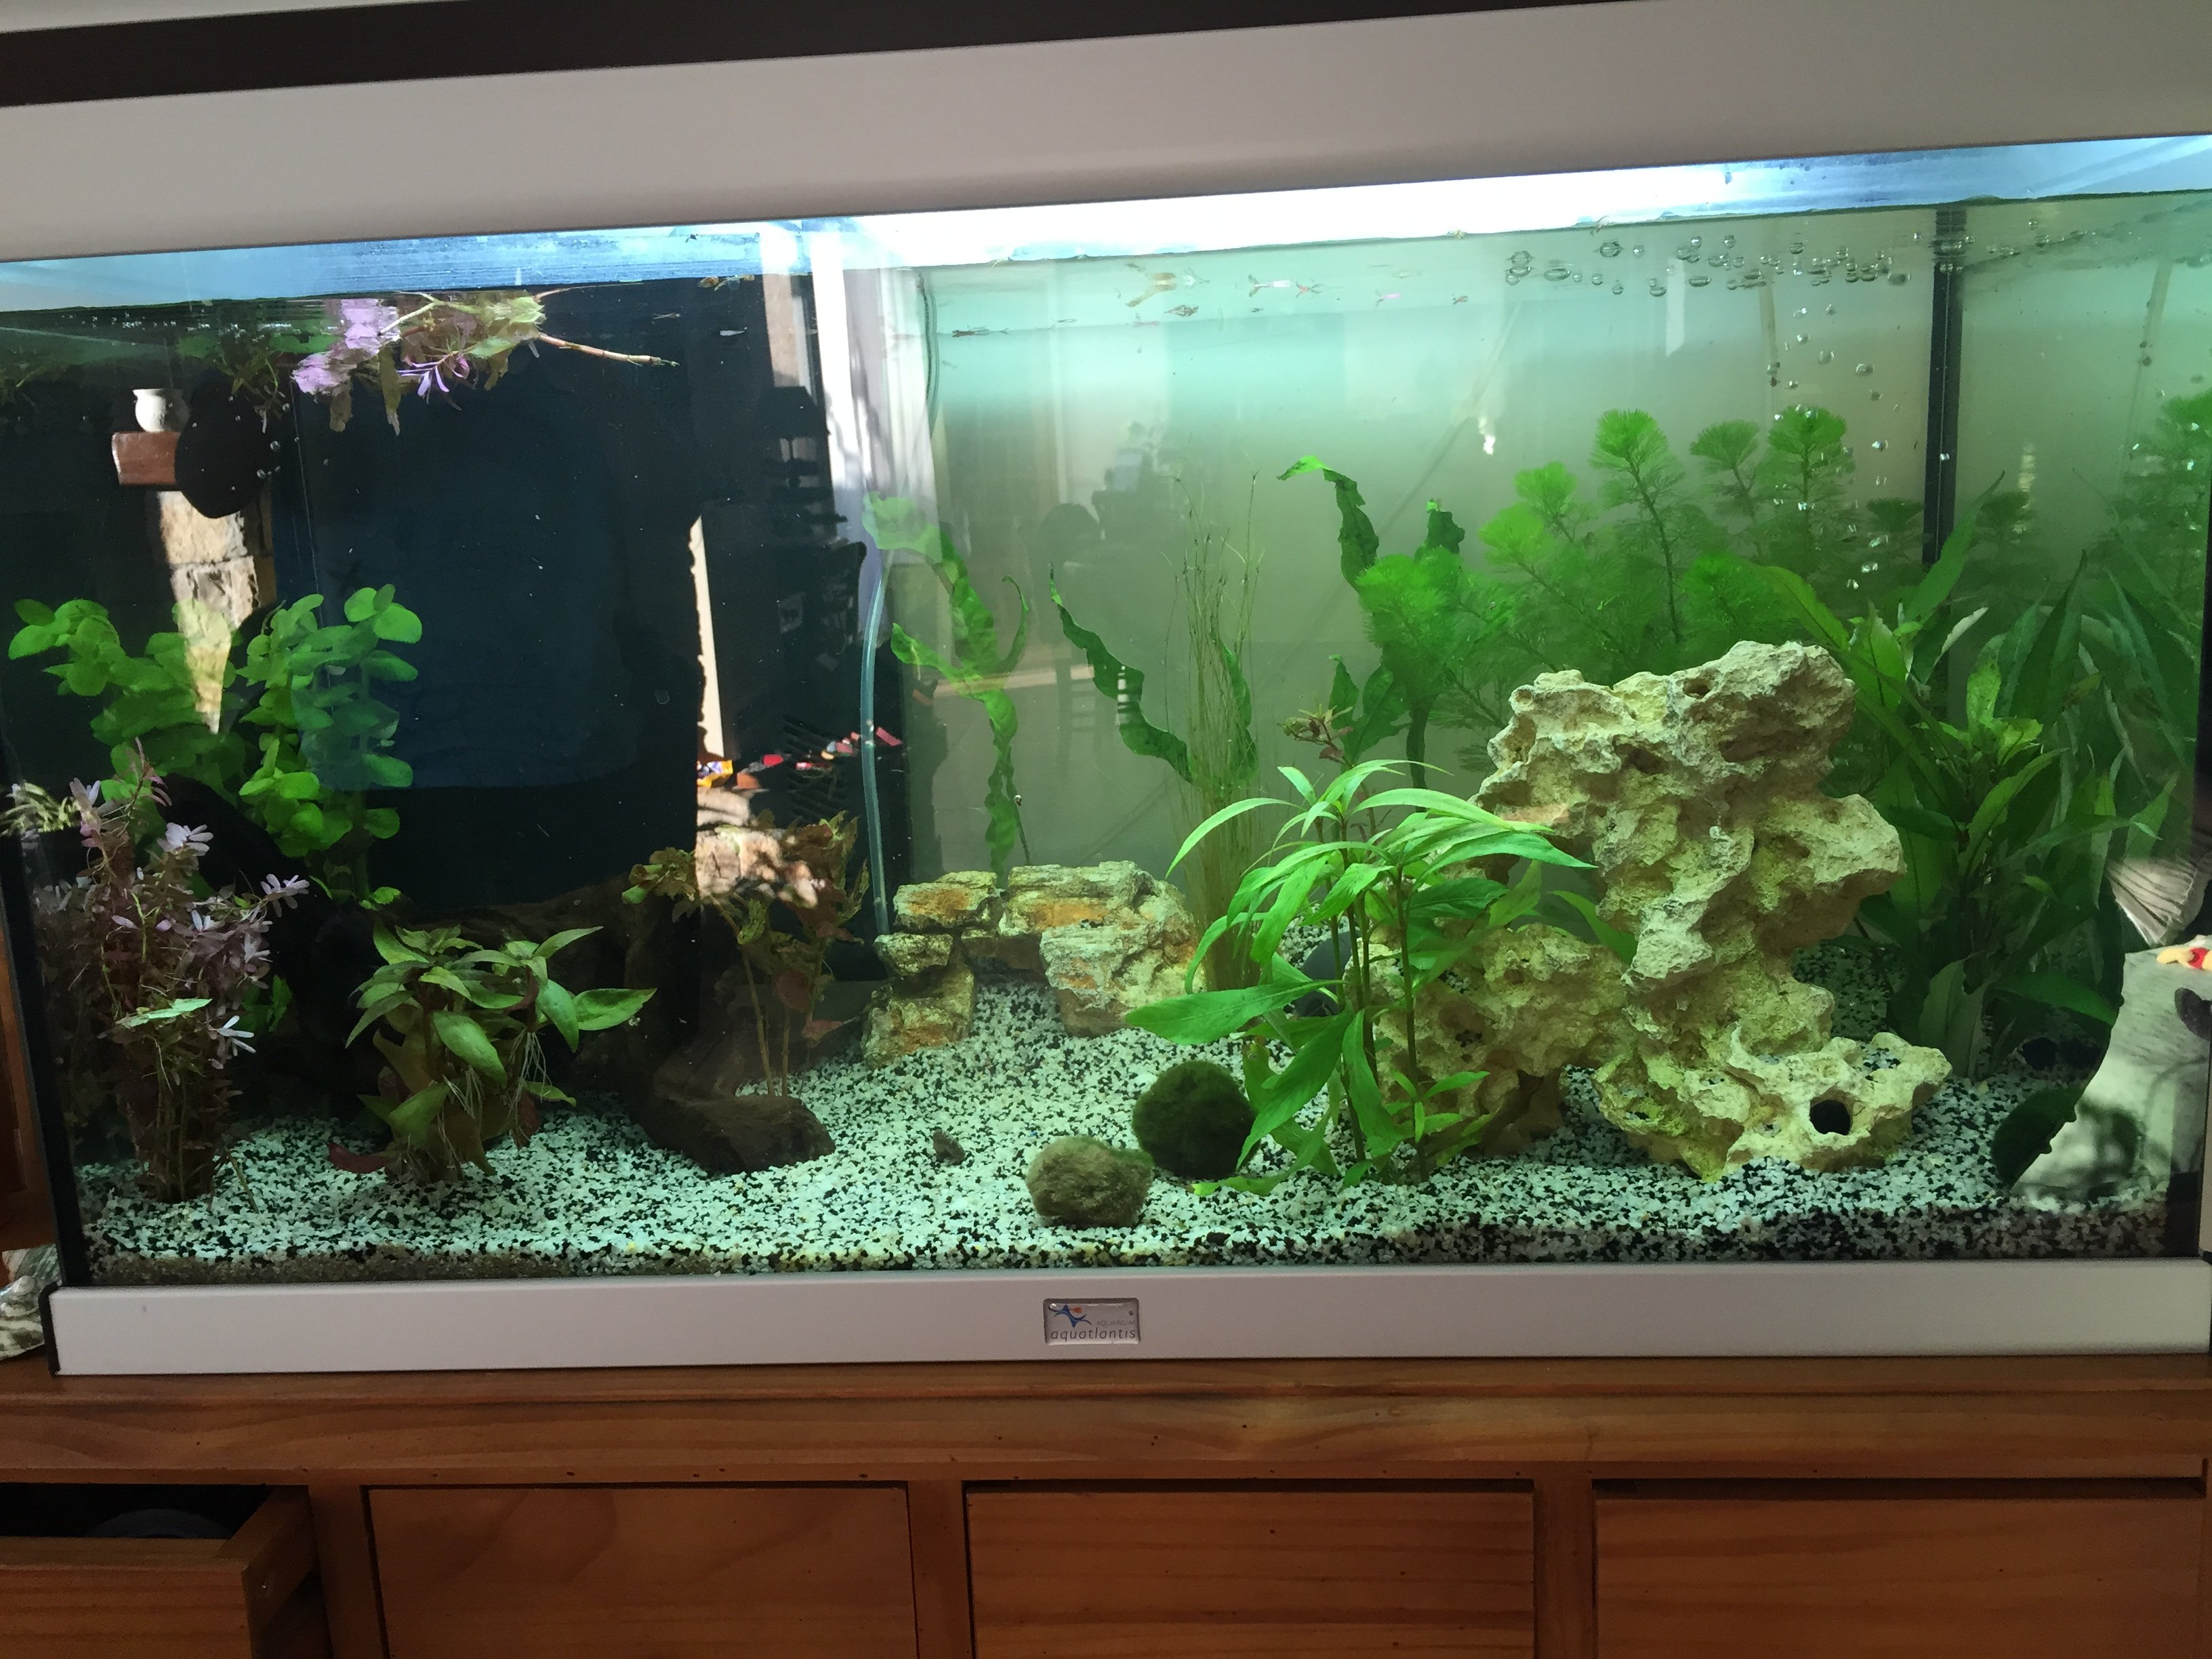 aquarium de 120 litres avec apistogramma cacatuoide et nez rouges. Black Bedroom Furniture Sets. Home Design Ideas